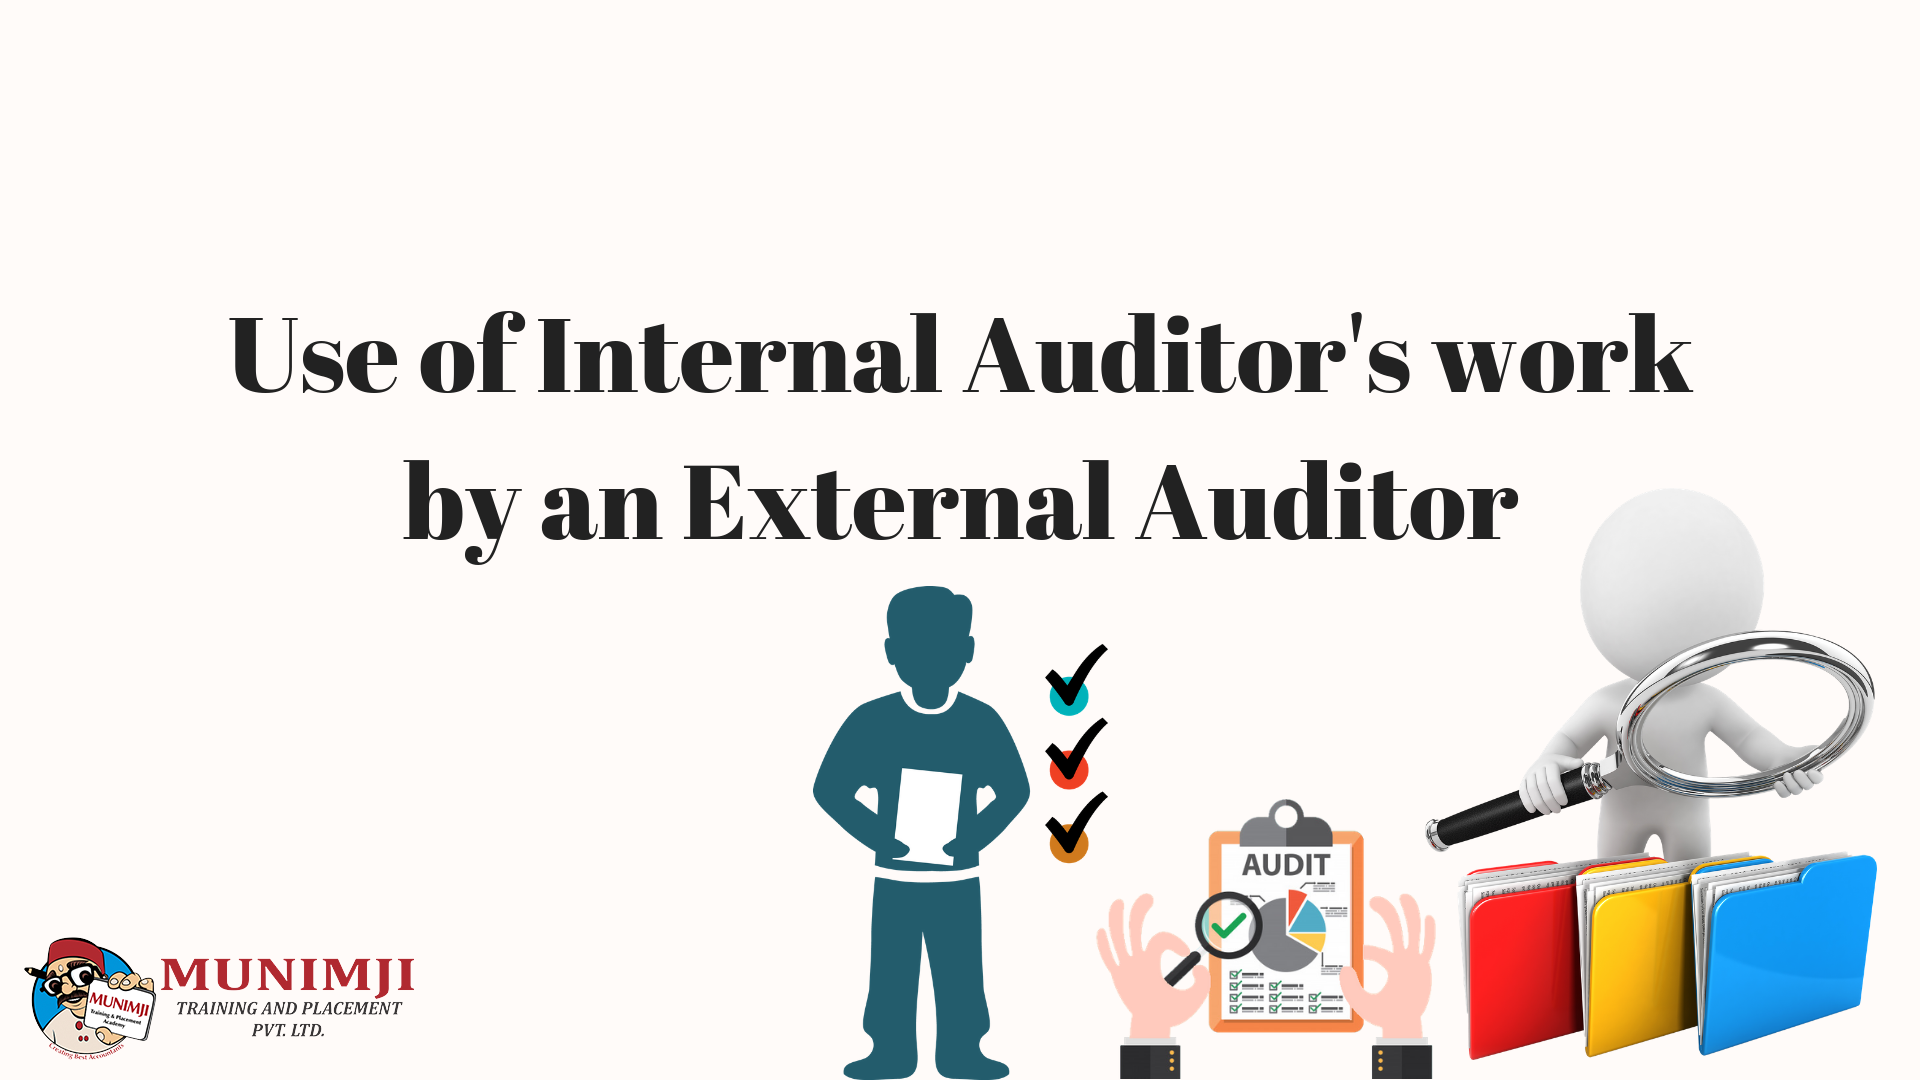 Use of Internal Auditors work by an External Auditor